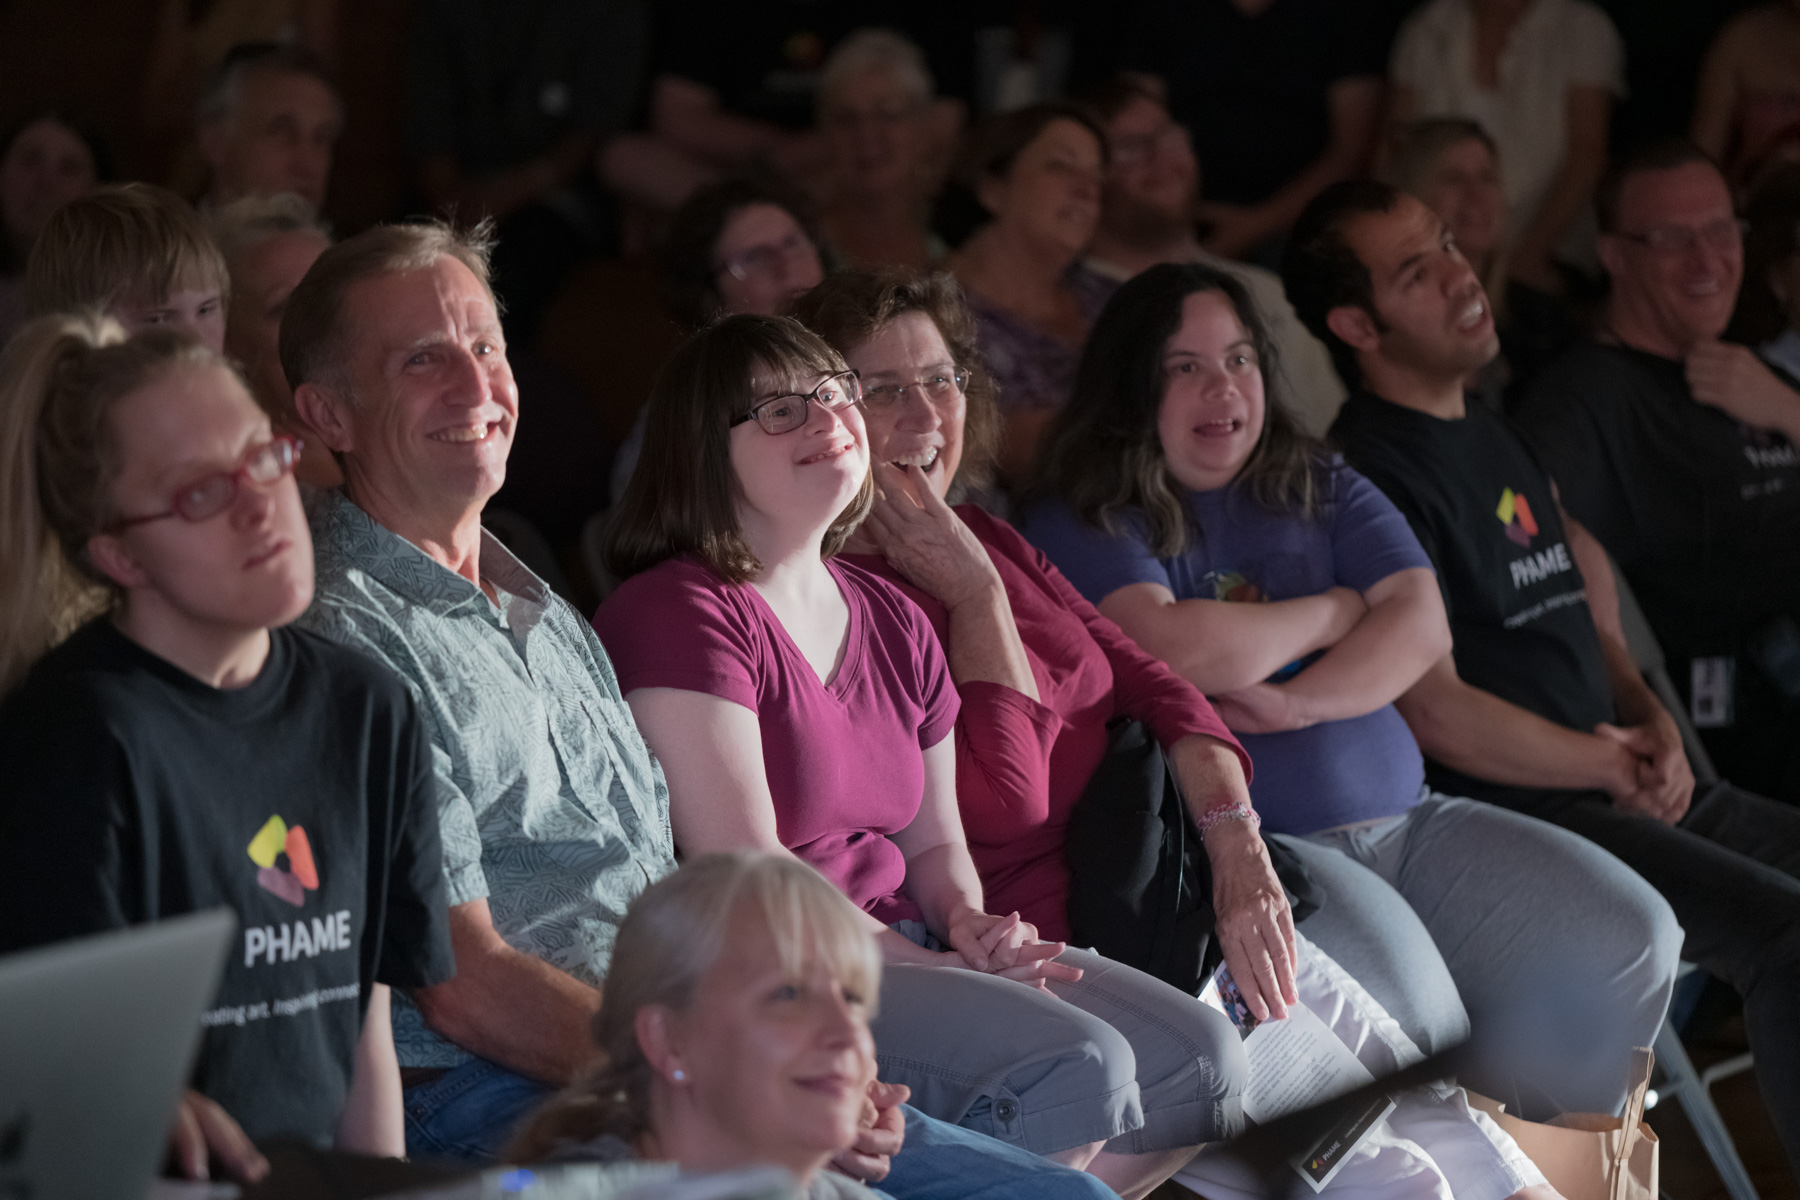 Group of people seated and happily watching something to the right